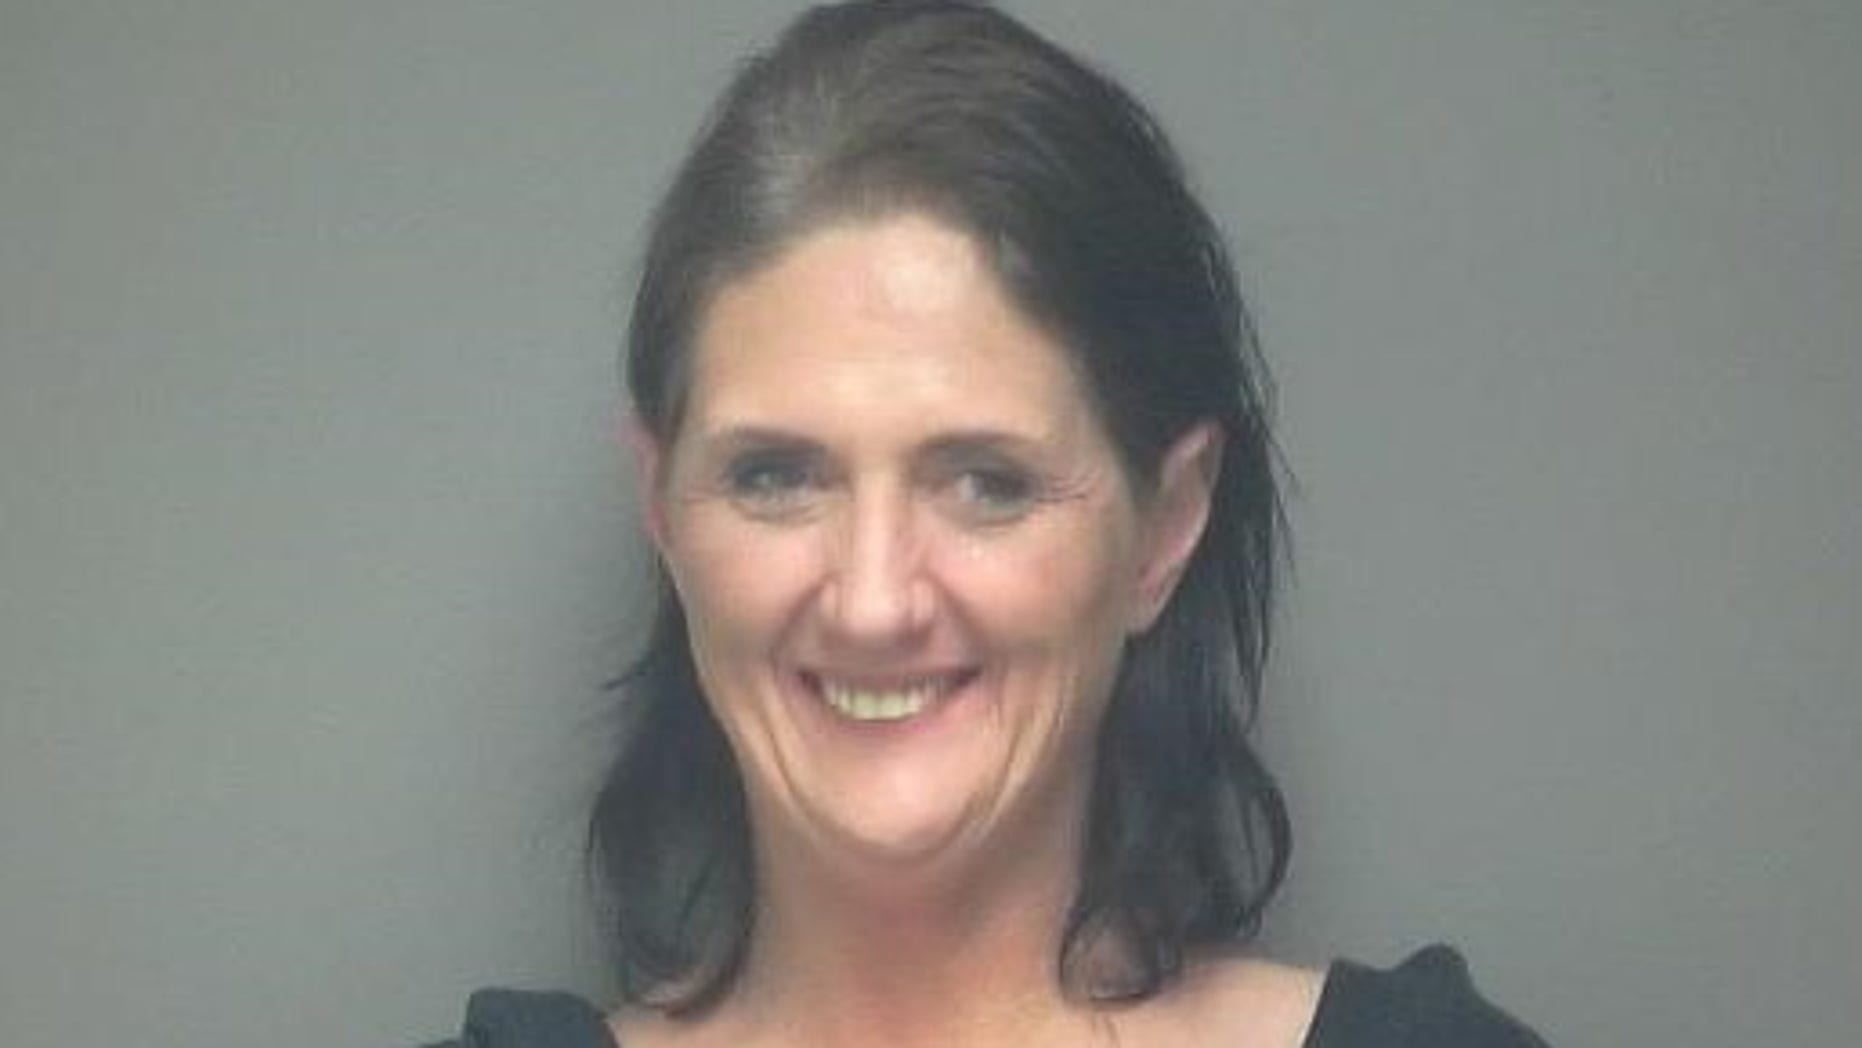 Cathleen Krause was arrested for allegedly handing out marijuana-laced cookies at a St. Patrick's Day parade.